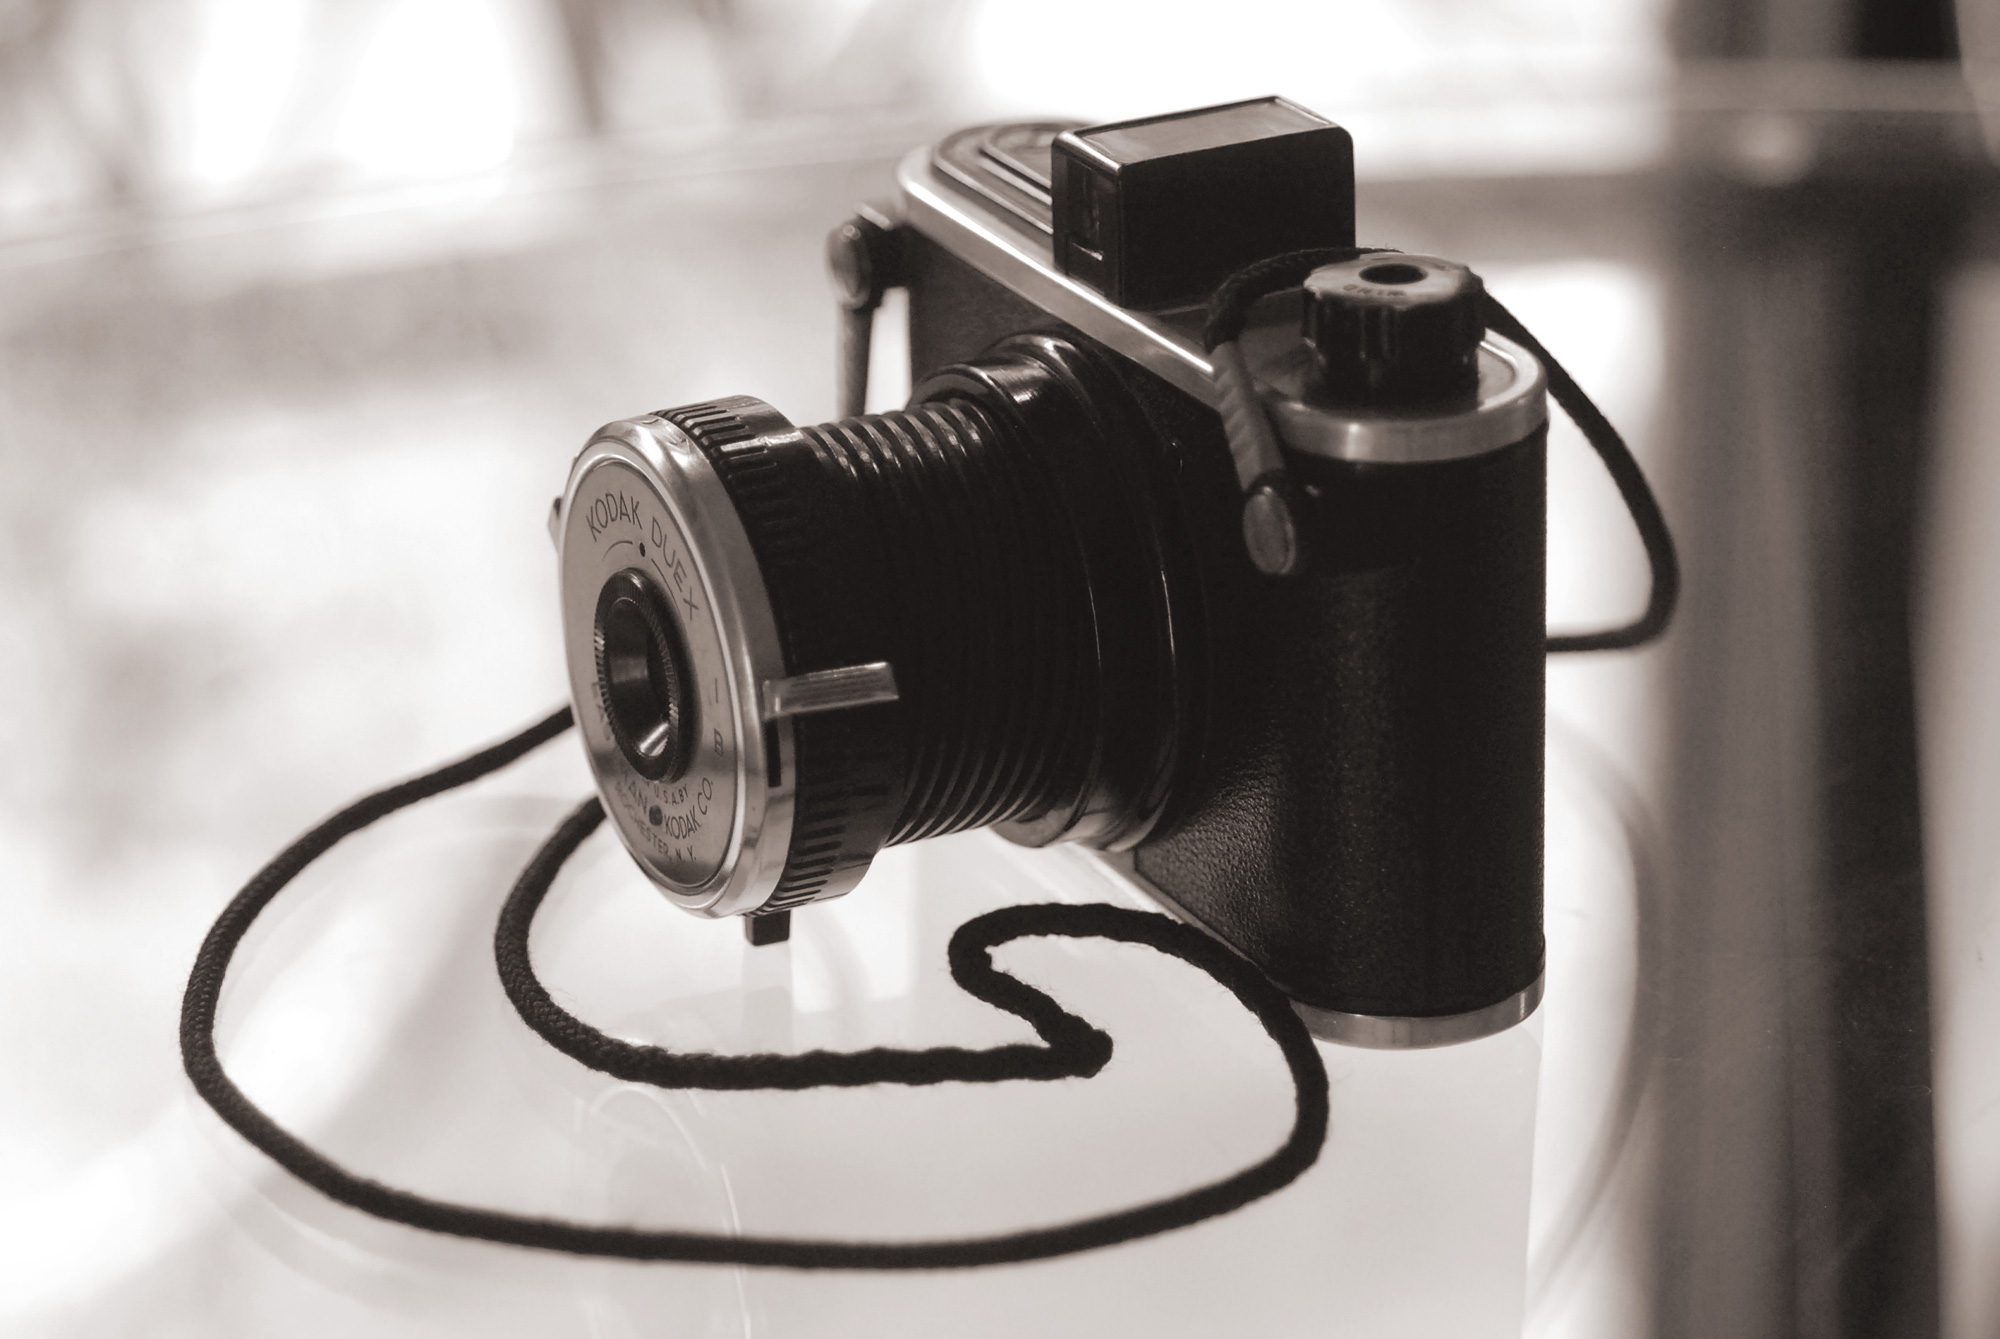 The Kodak Duex is a very unusal 620-format camera with a helical telescoping ...